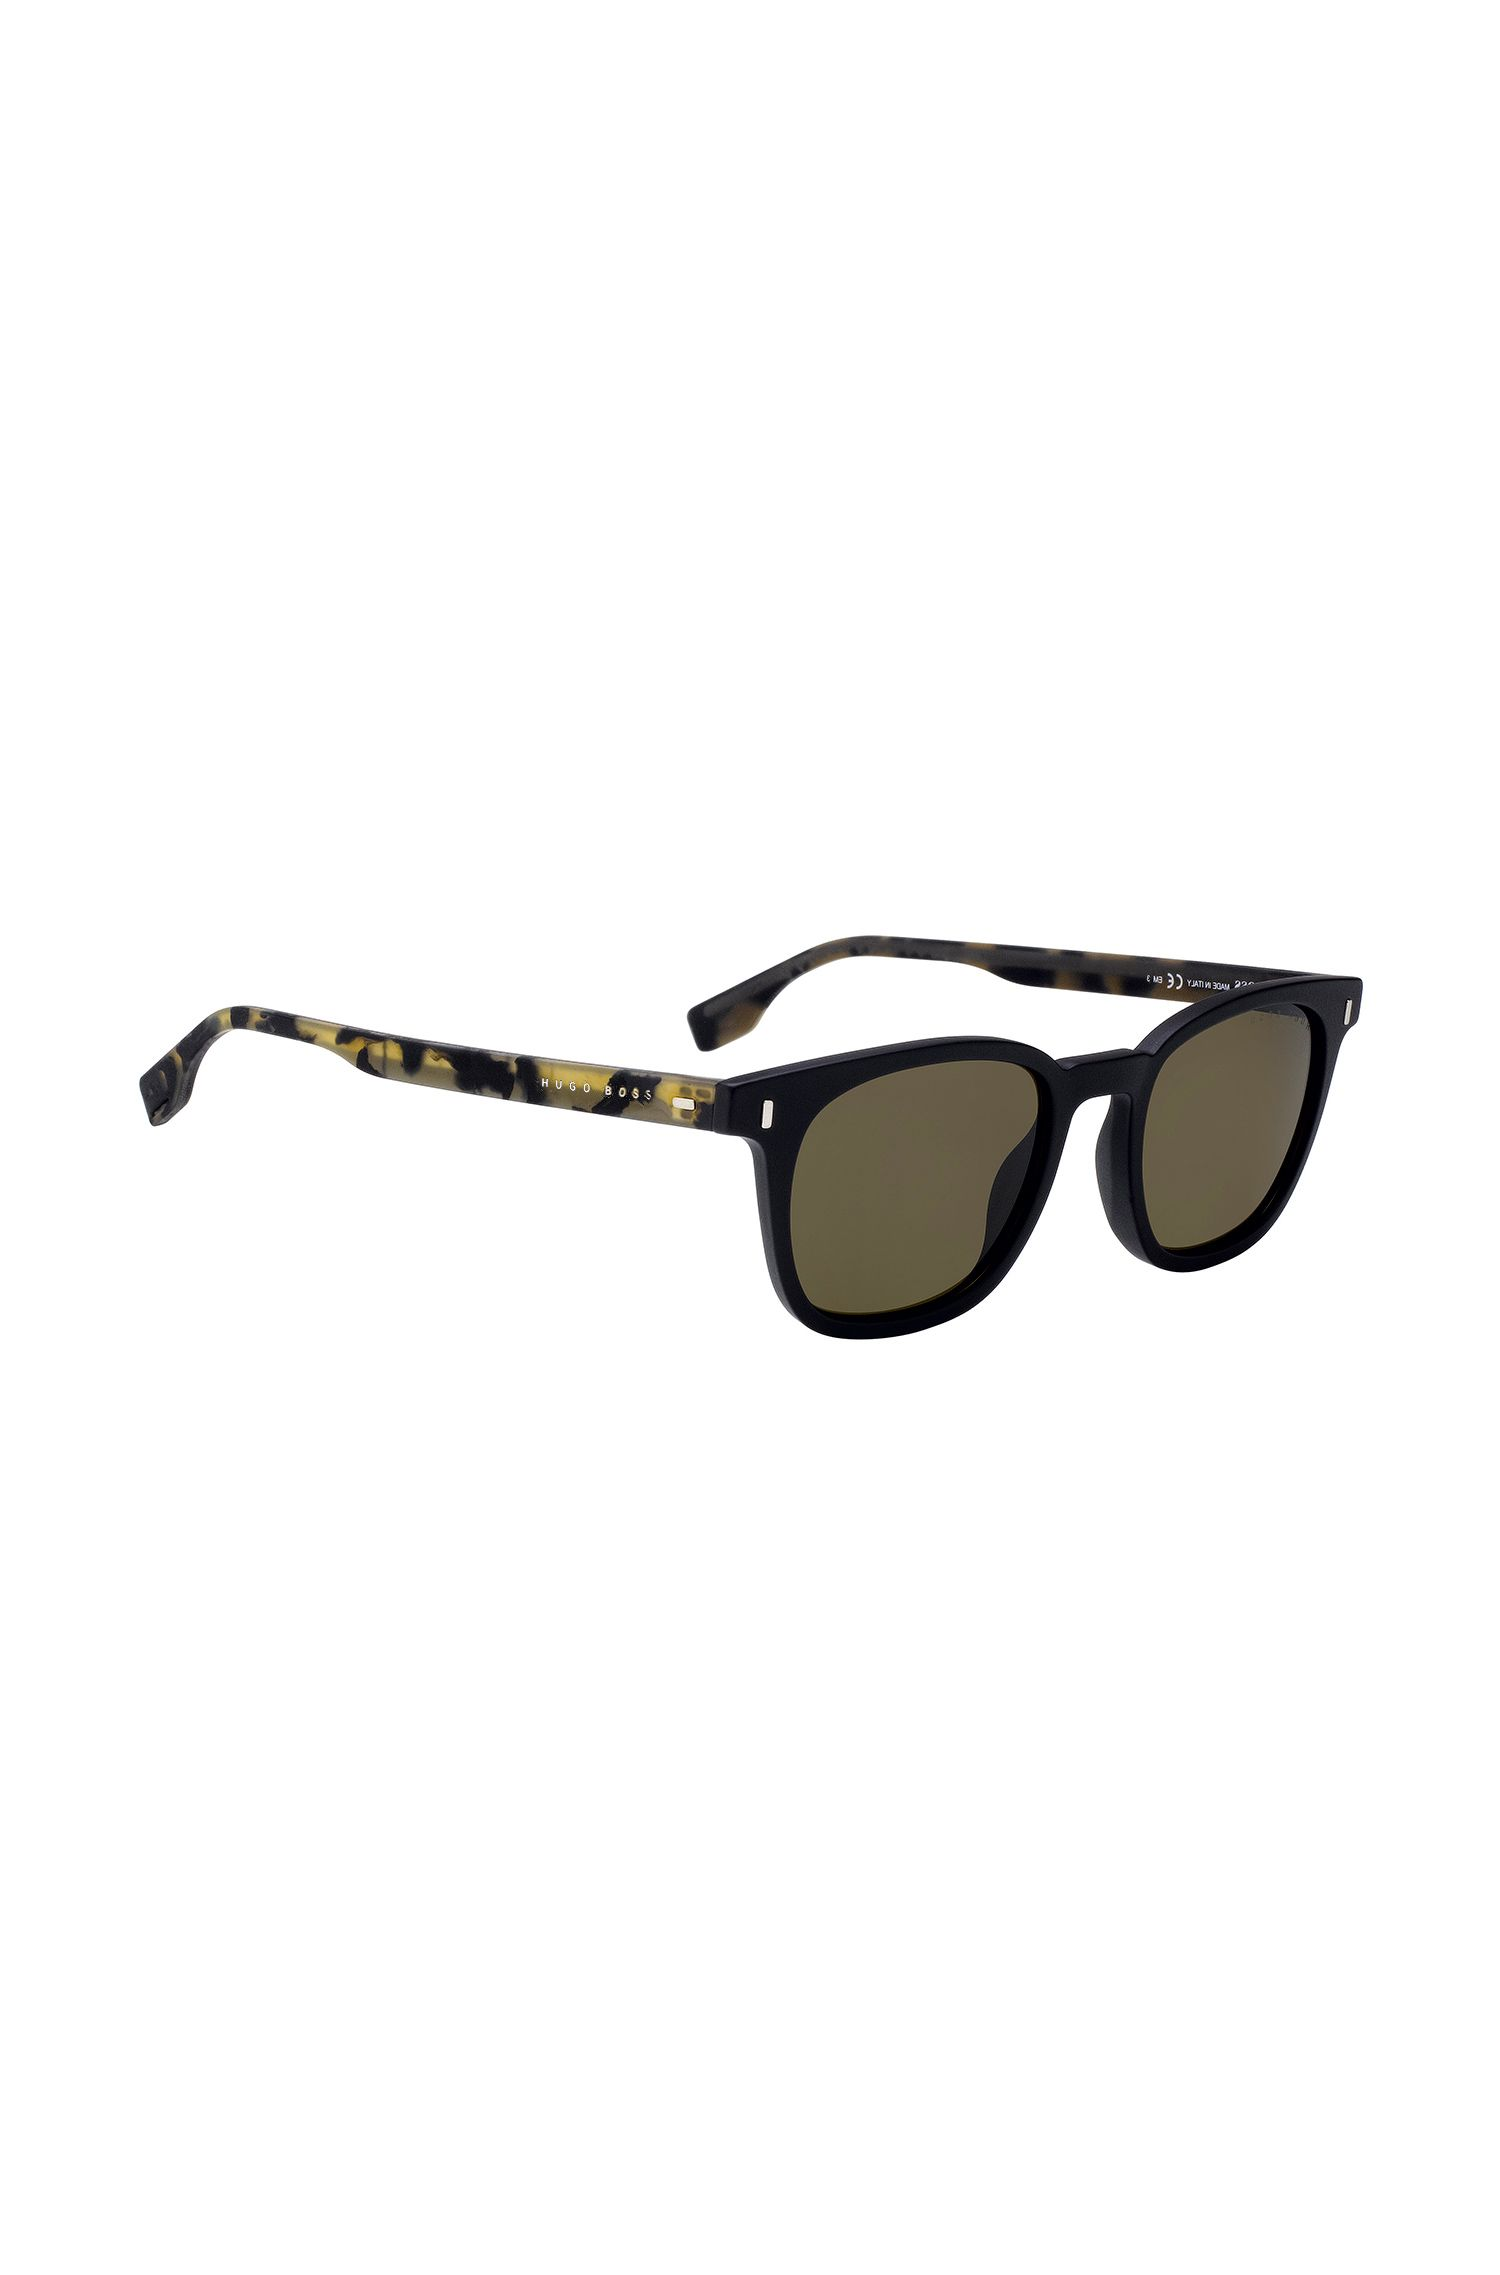 Sunglasses with rubber Havana temples, Patterned